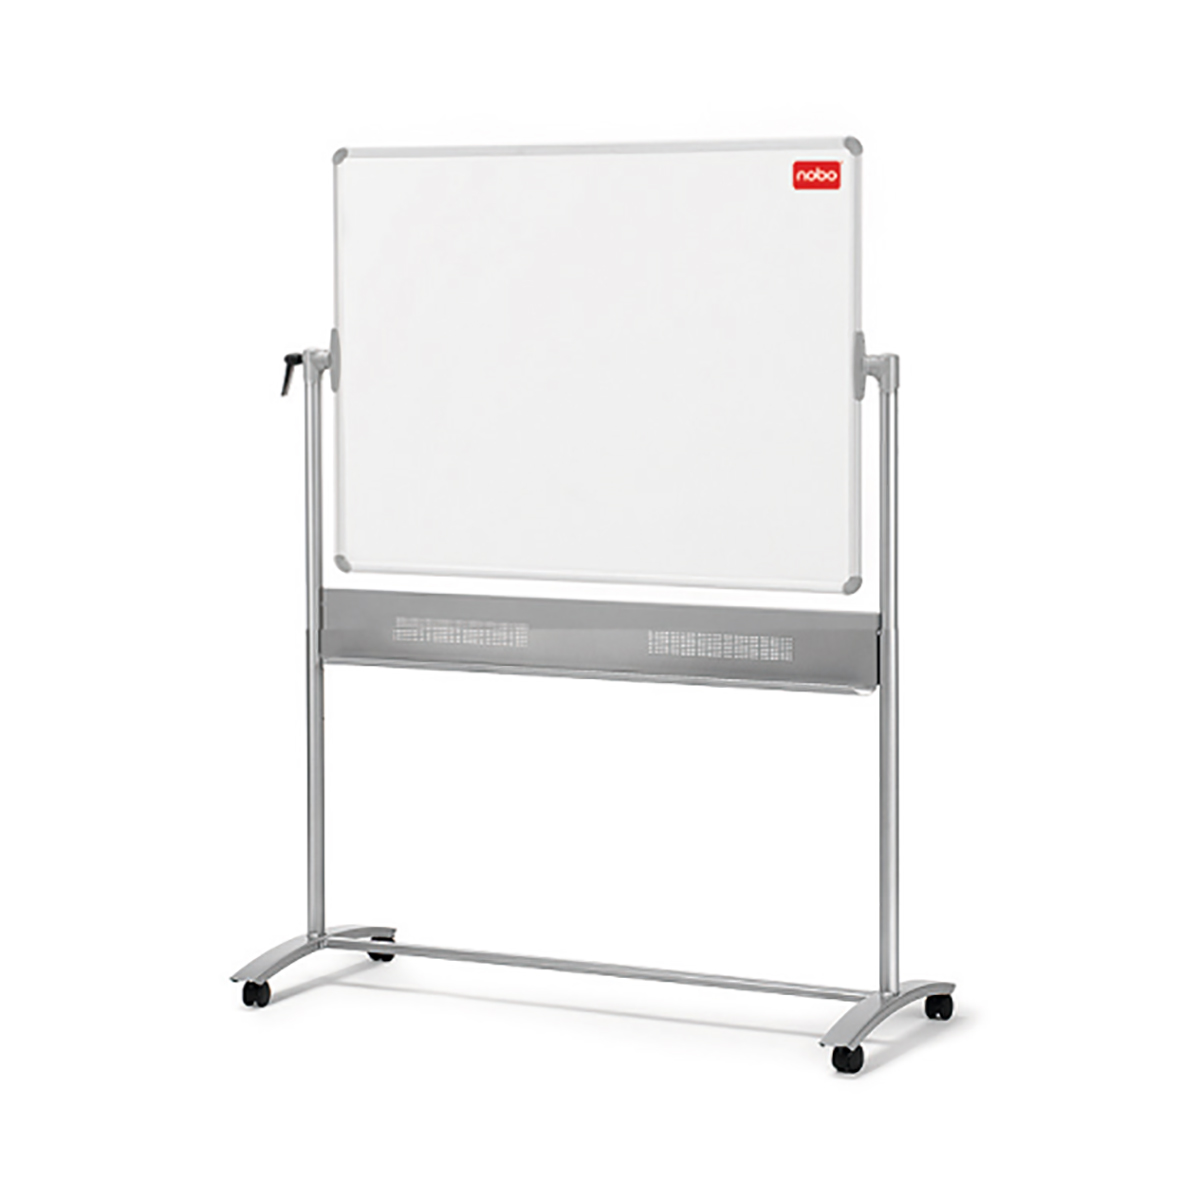 Nobo 1901031 Dual Sided Mobile Whiteboard 1500 x 1200mm